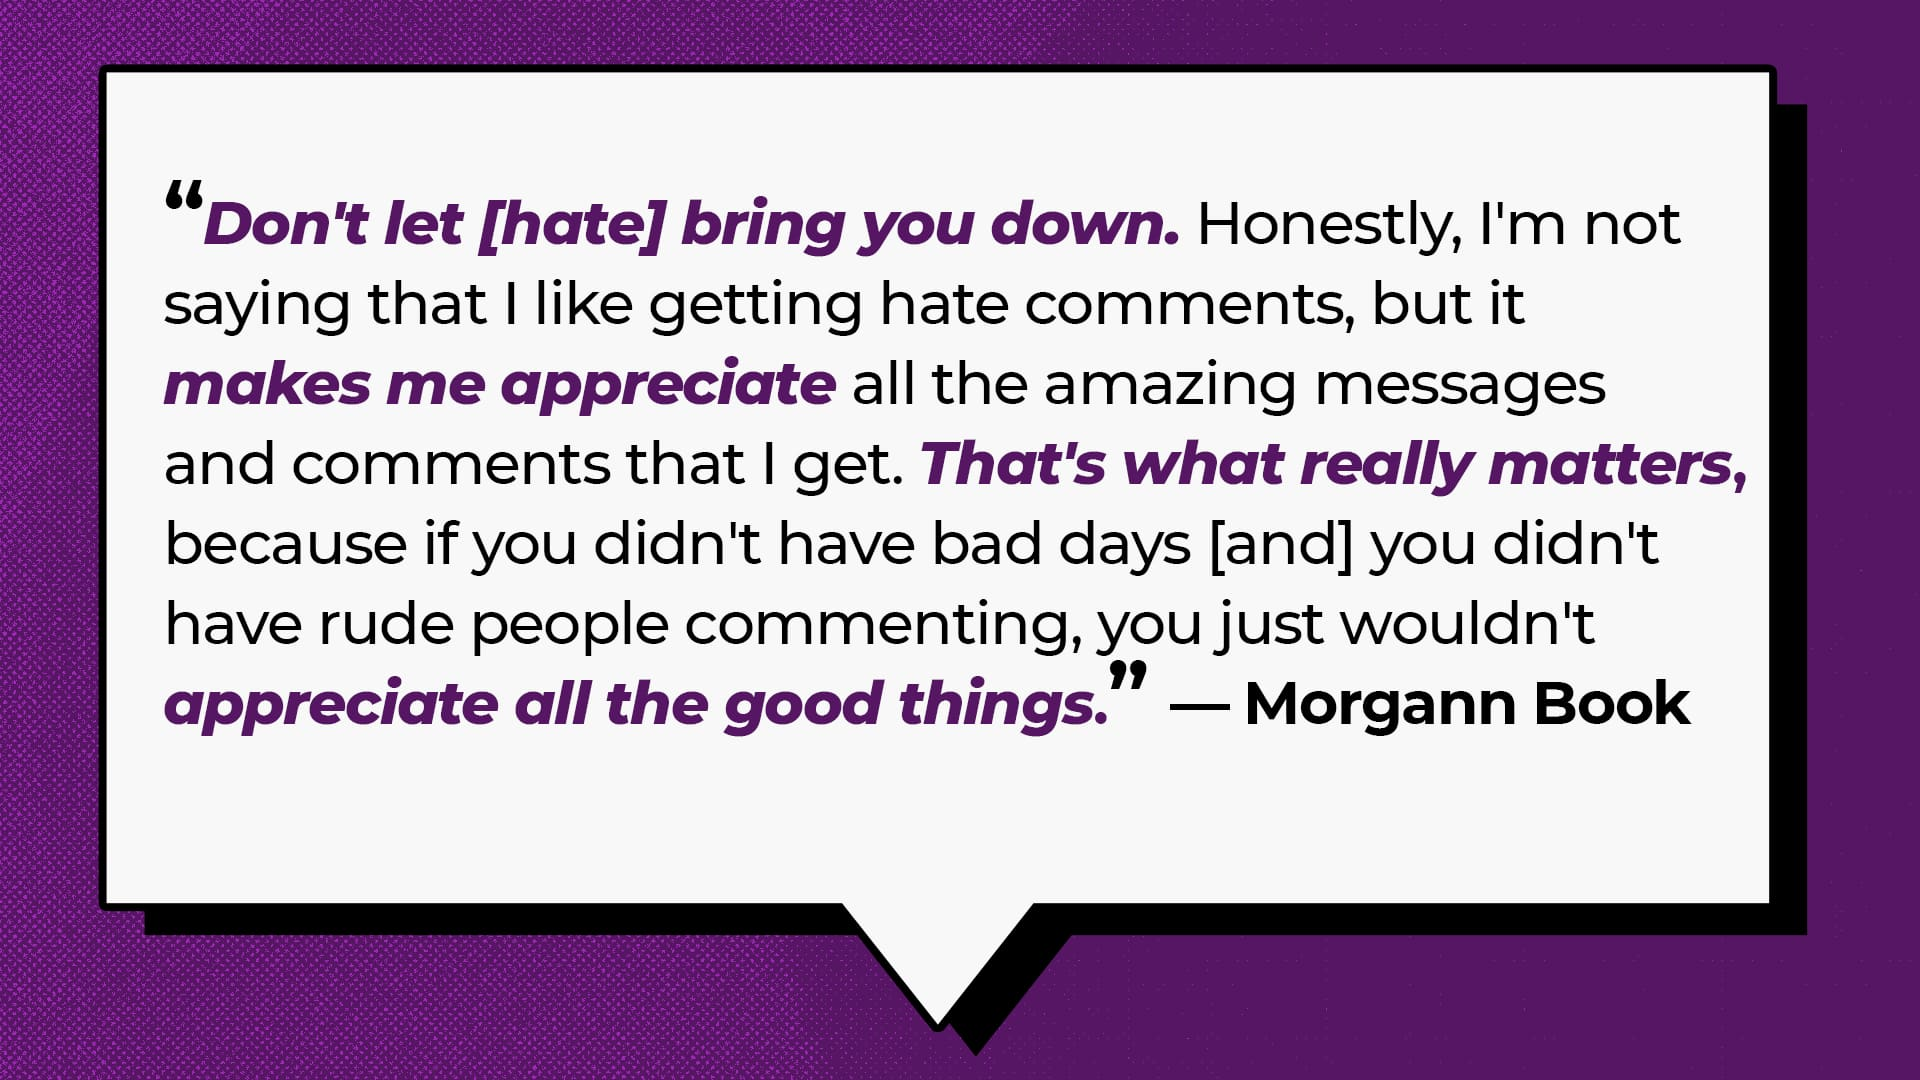 """""""Don't let [hate] bring you down. Honestly, I'm not saying that I like getting hate comments, but it makes me appreciate all the amazing messages and comments that I get. That's what really matters, because if you didn't have bad days [and] you didn't have rude people commenting, you just wouldn't appreciate all the good things."""" - Morgann Book"""